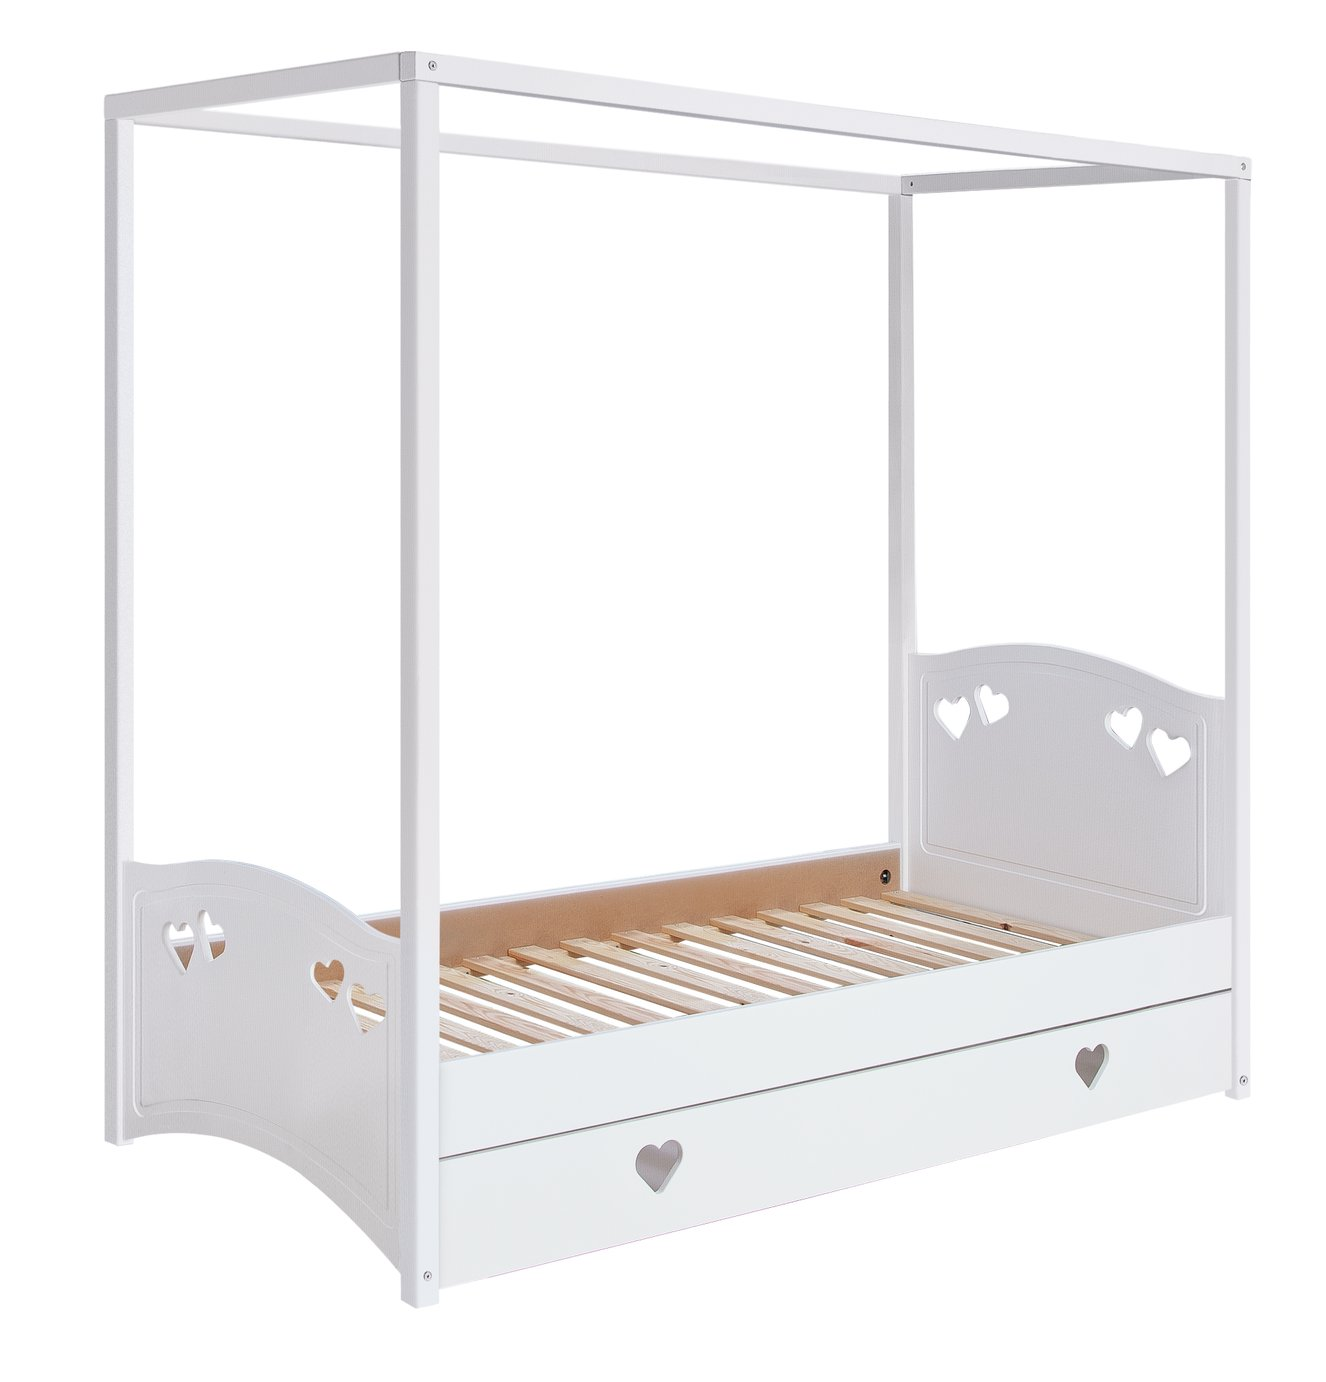 Buy Collection Mia Single 4 Poster Bed Frame White Kids beds Argos